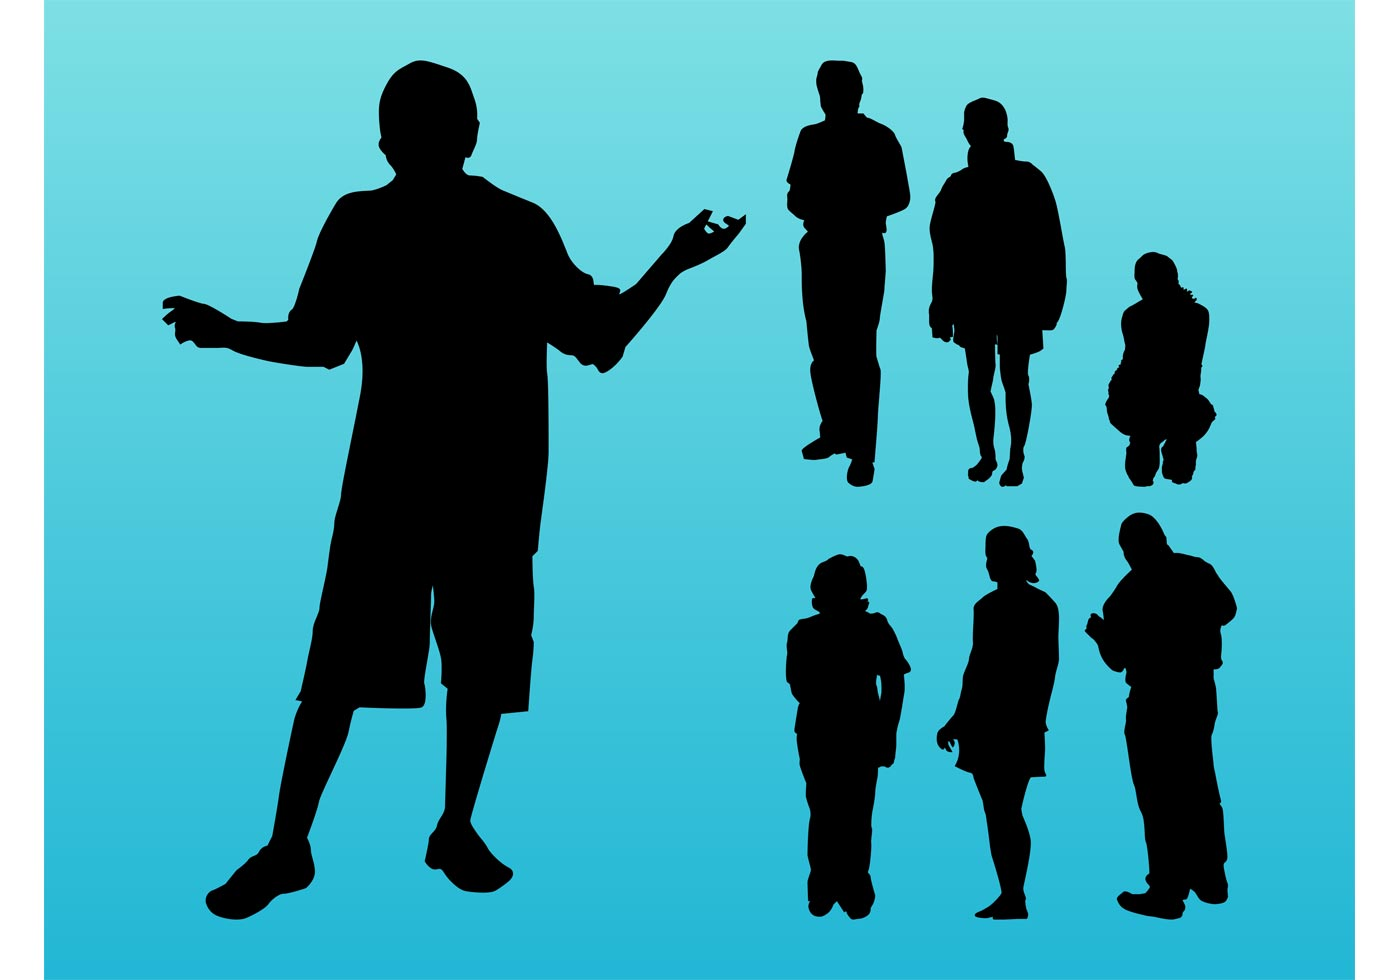 Traveling People Silhouettes Vector Art Graphics: People Silhouettes Images